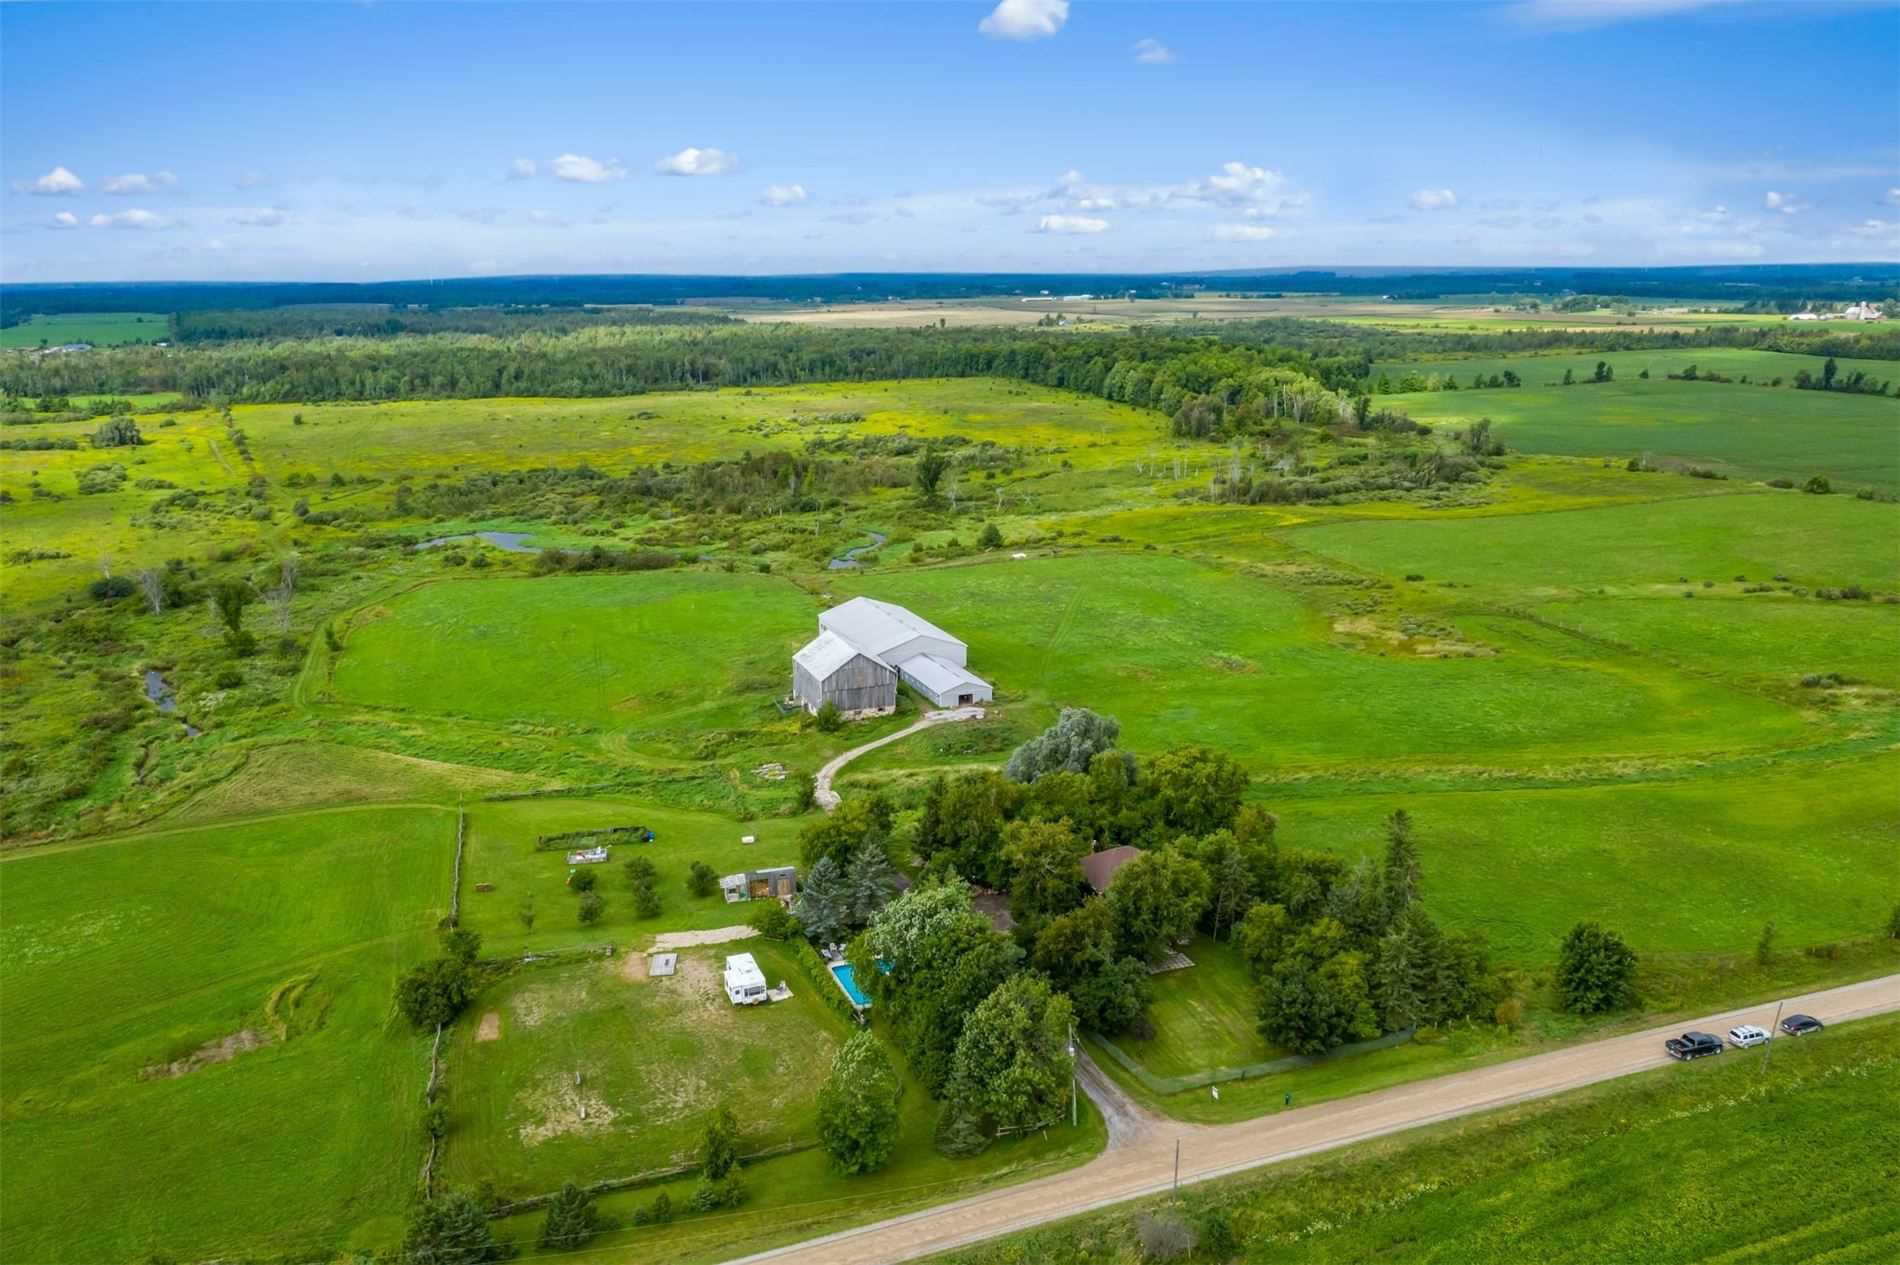 Main Photo: 374448 6th Line in Amaranth: Rural Amaranth House (2-Storey) for sale : MLS®# X4896918